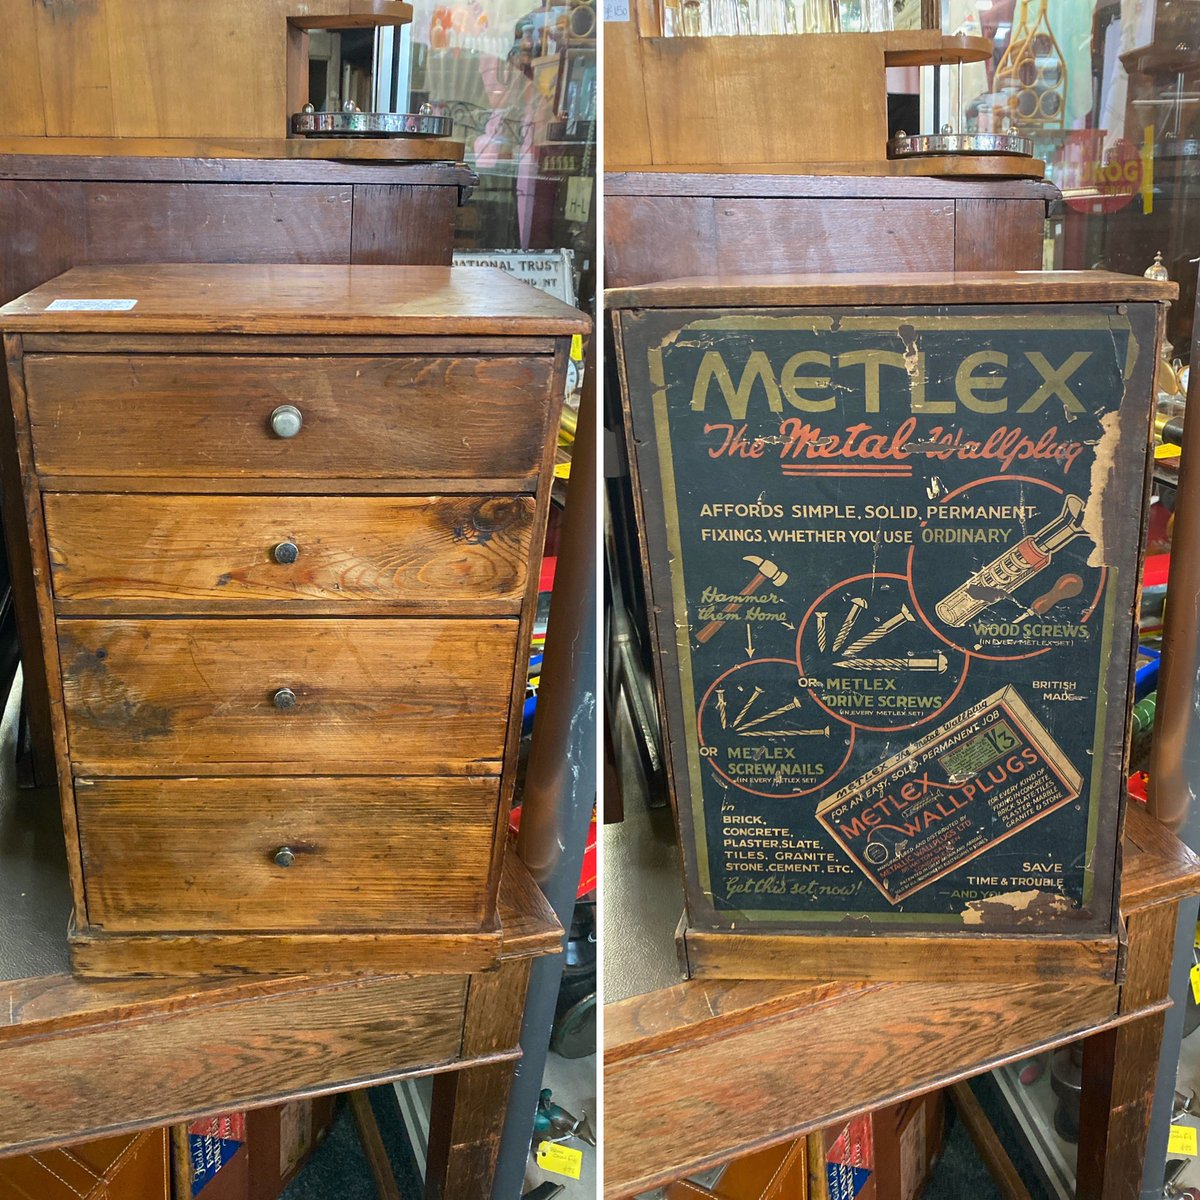 Early 1900's ironmongers cabinet with rear advertisement. #astraantiquescentre #hemswell #lincolnshire #newstock #ironmongery<br>http://pic.twitter.com/odJBdodZ68